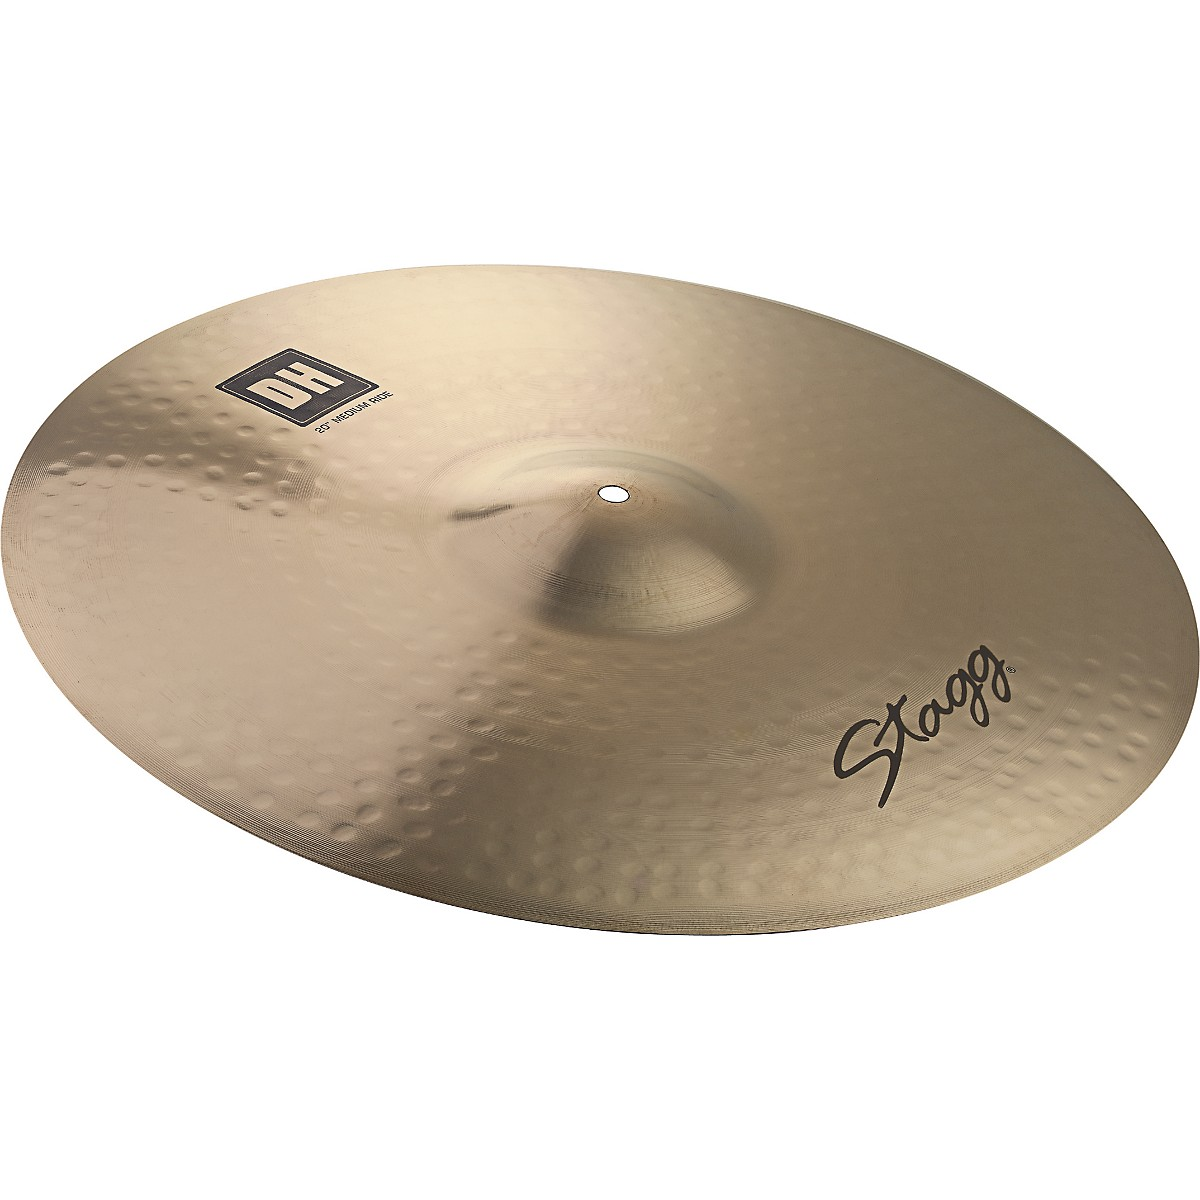 Stagg DH Dual-Hammered Brilliant Rock Ride Cymbal